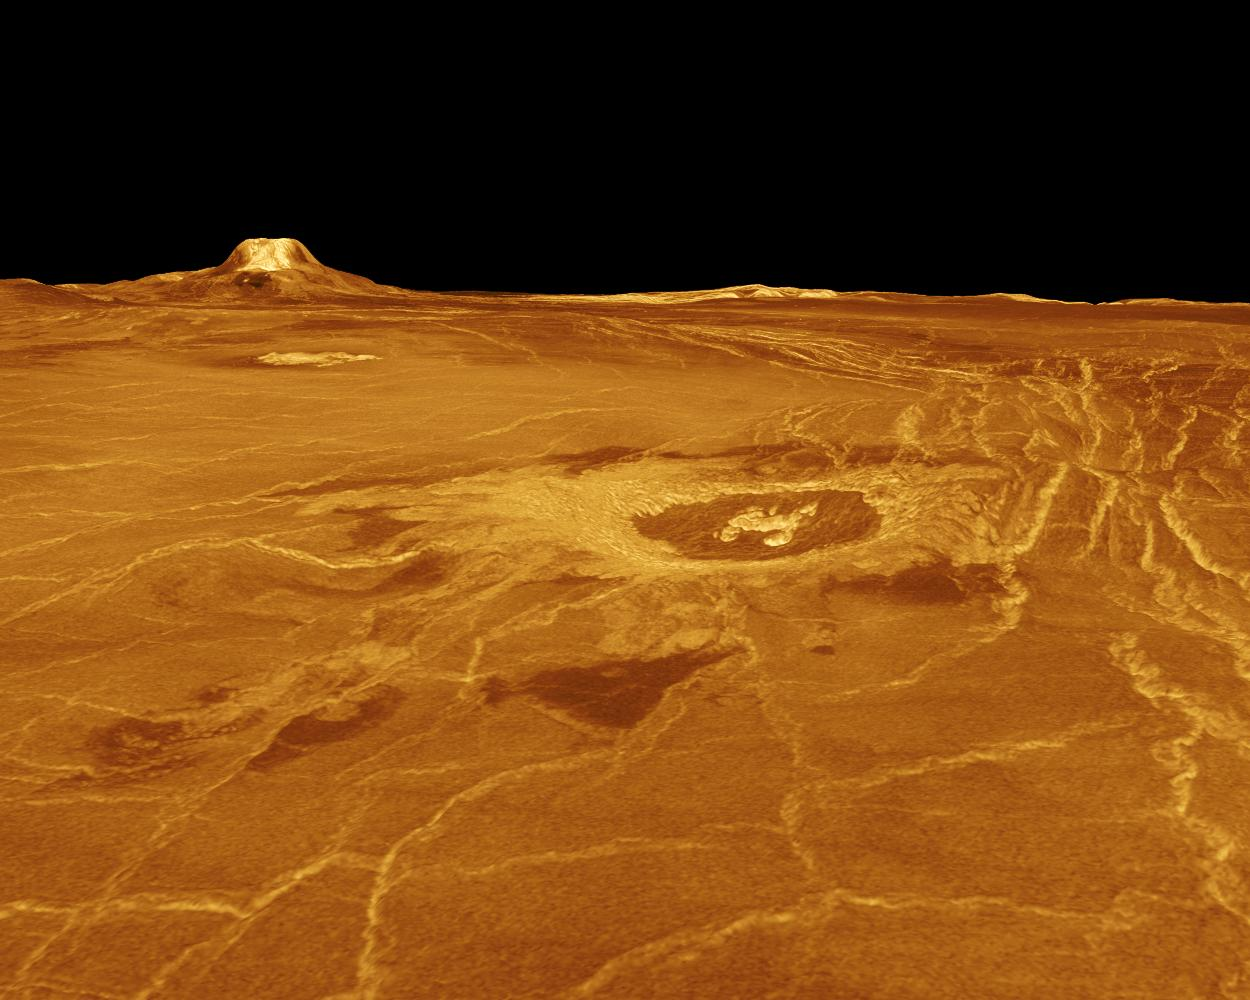 venus volcanoes nasa - photo #8